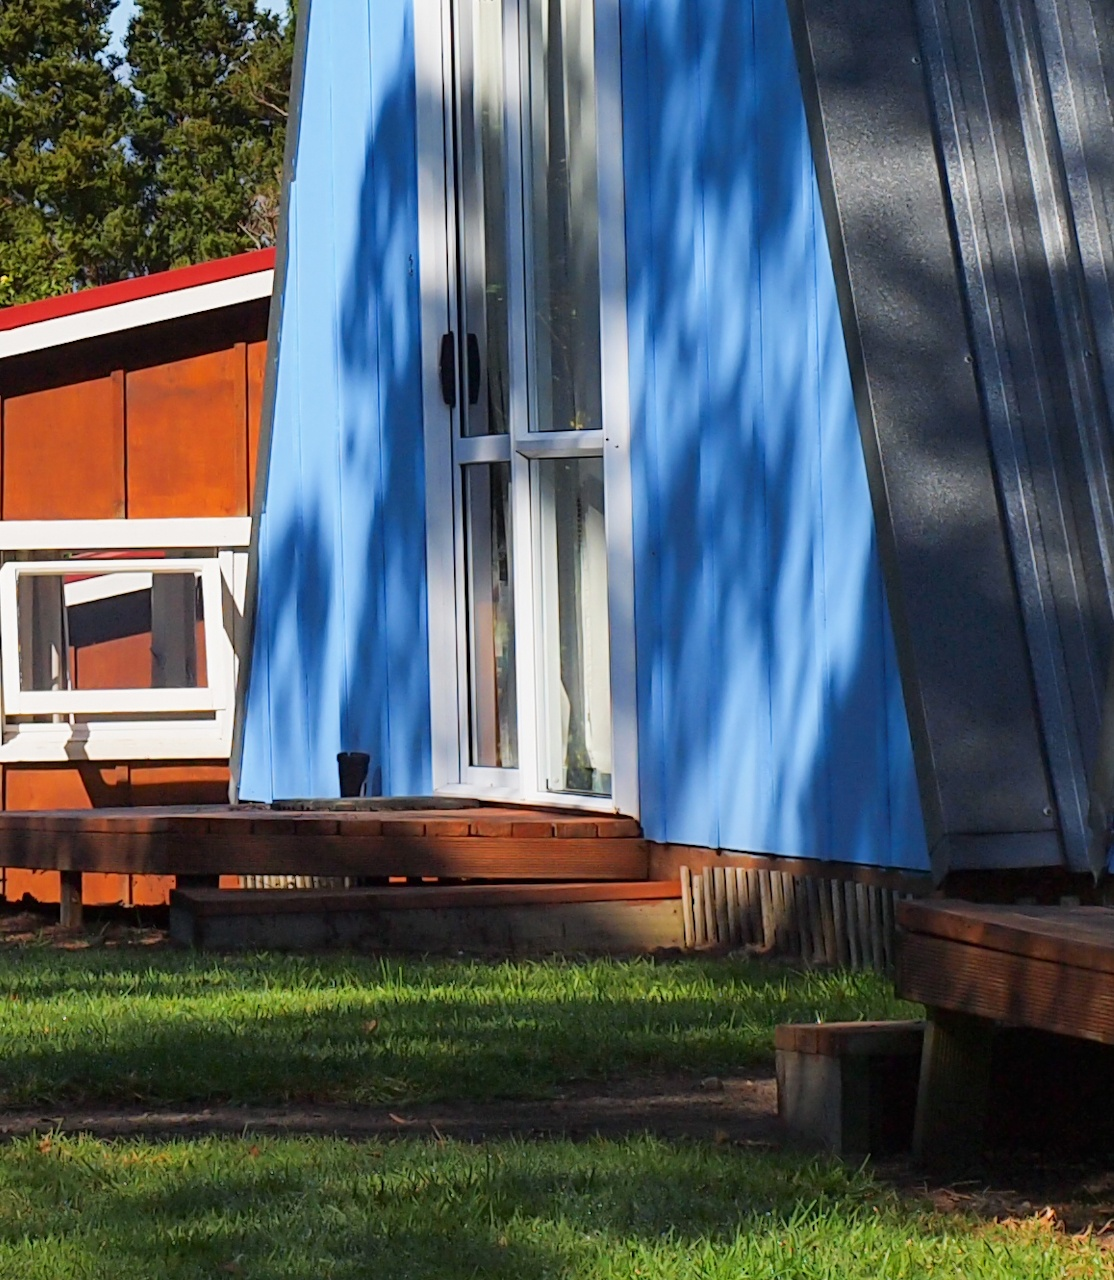 colorful wooden cabin